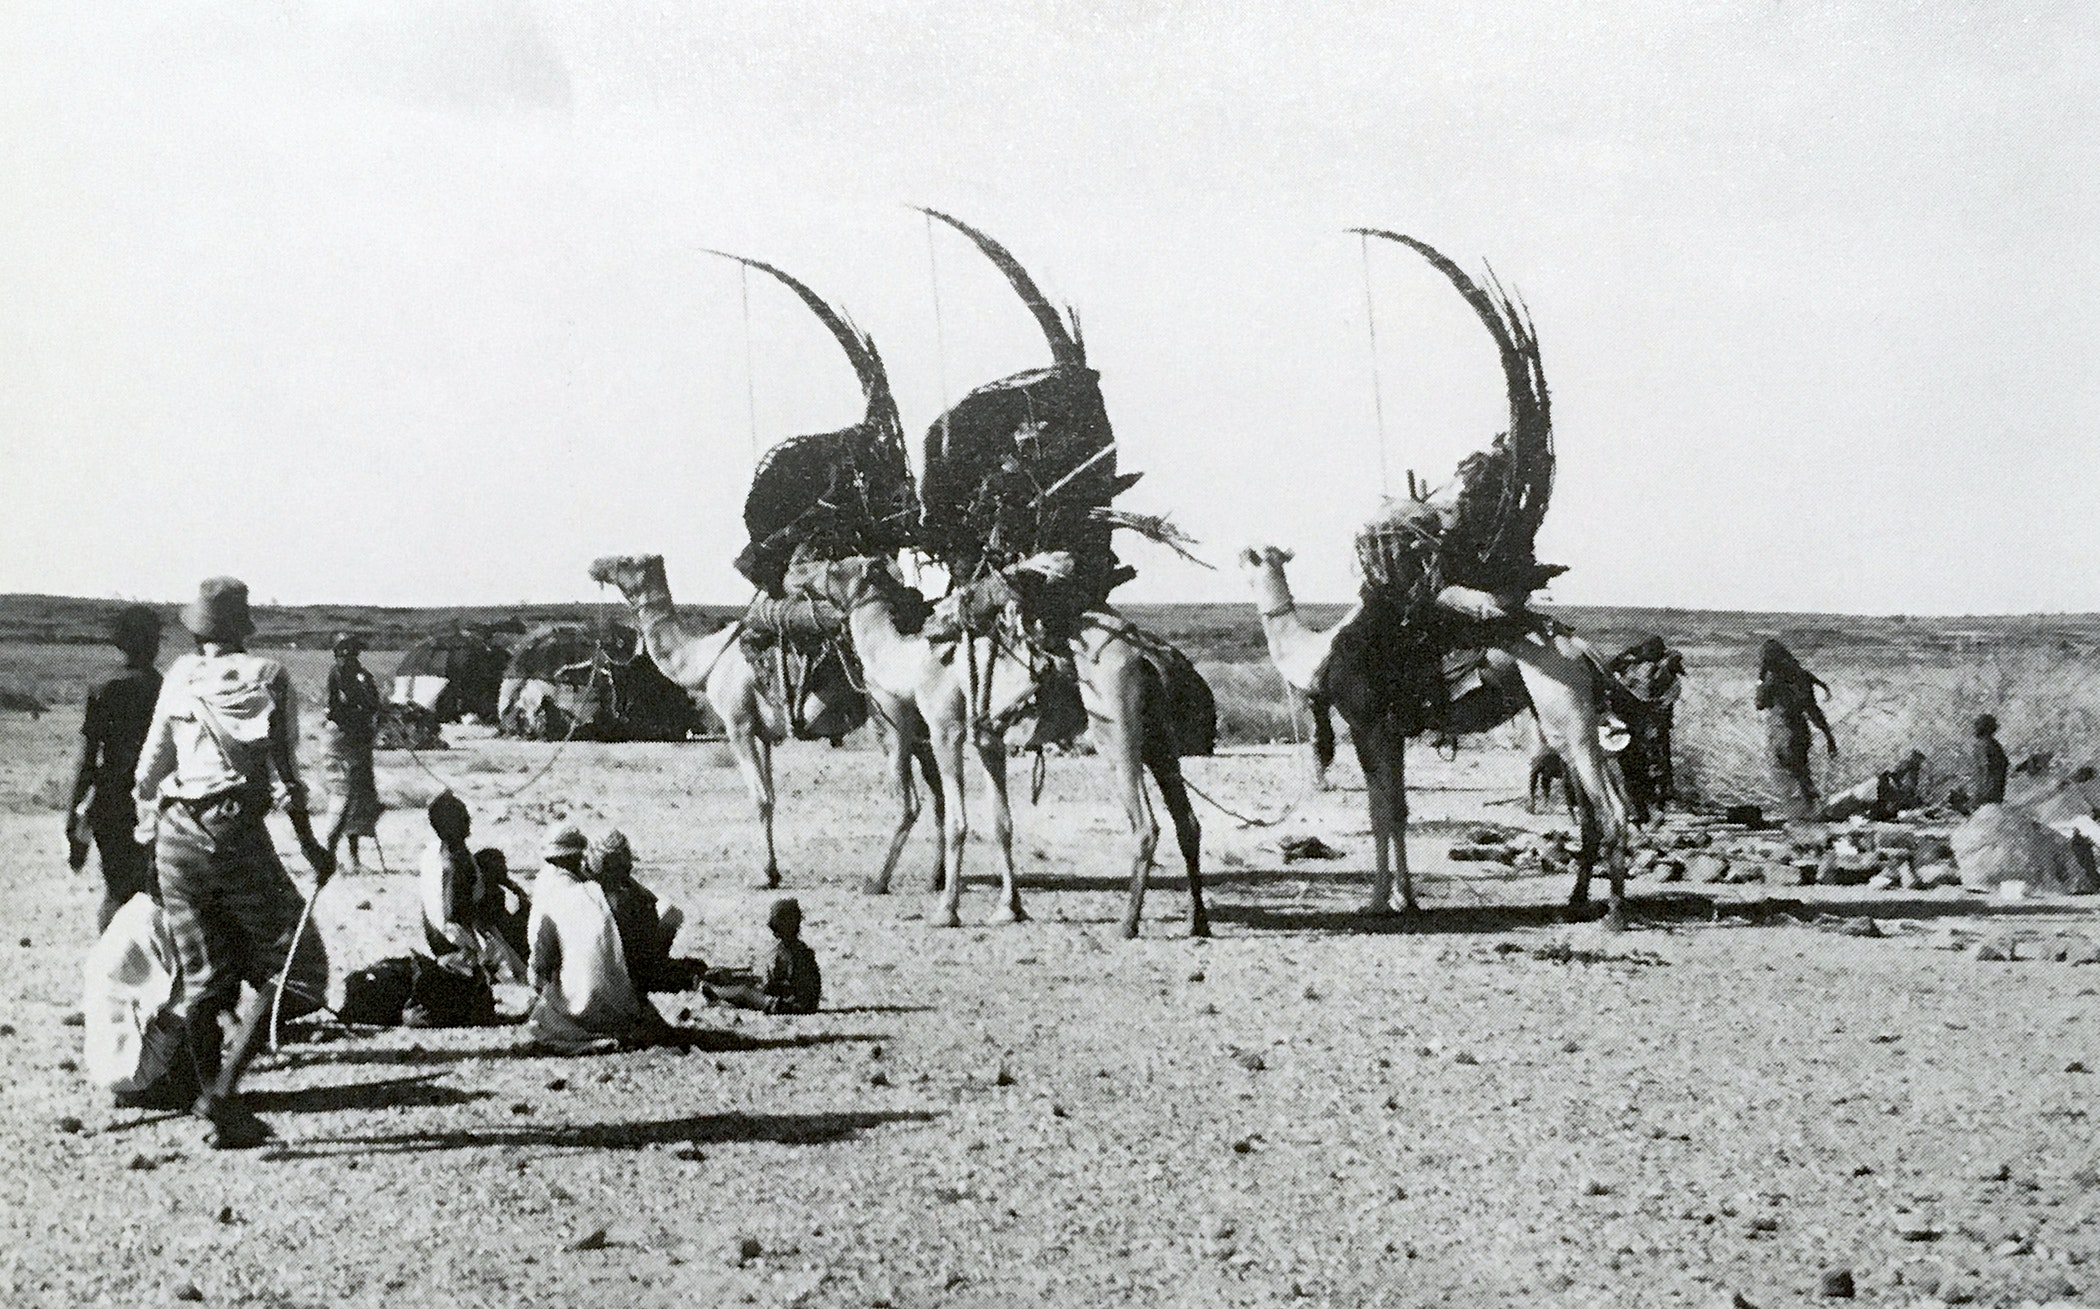 Gabra women securing tent elements that have been reconfigured to form the camel litter armature, northern Kenya, photograph by Labelle Prussin, published in Labelle Prussin, African Nomadic Architecture: Space, Place and Gender